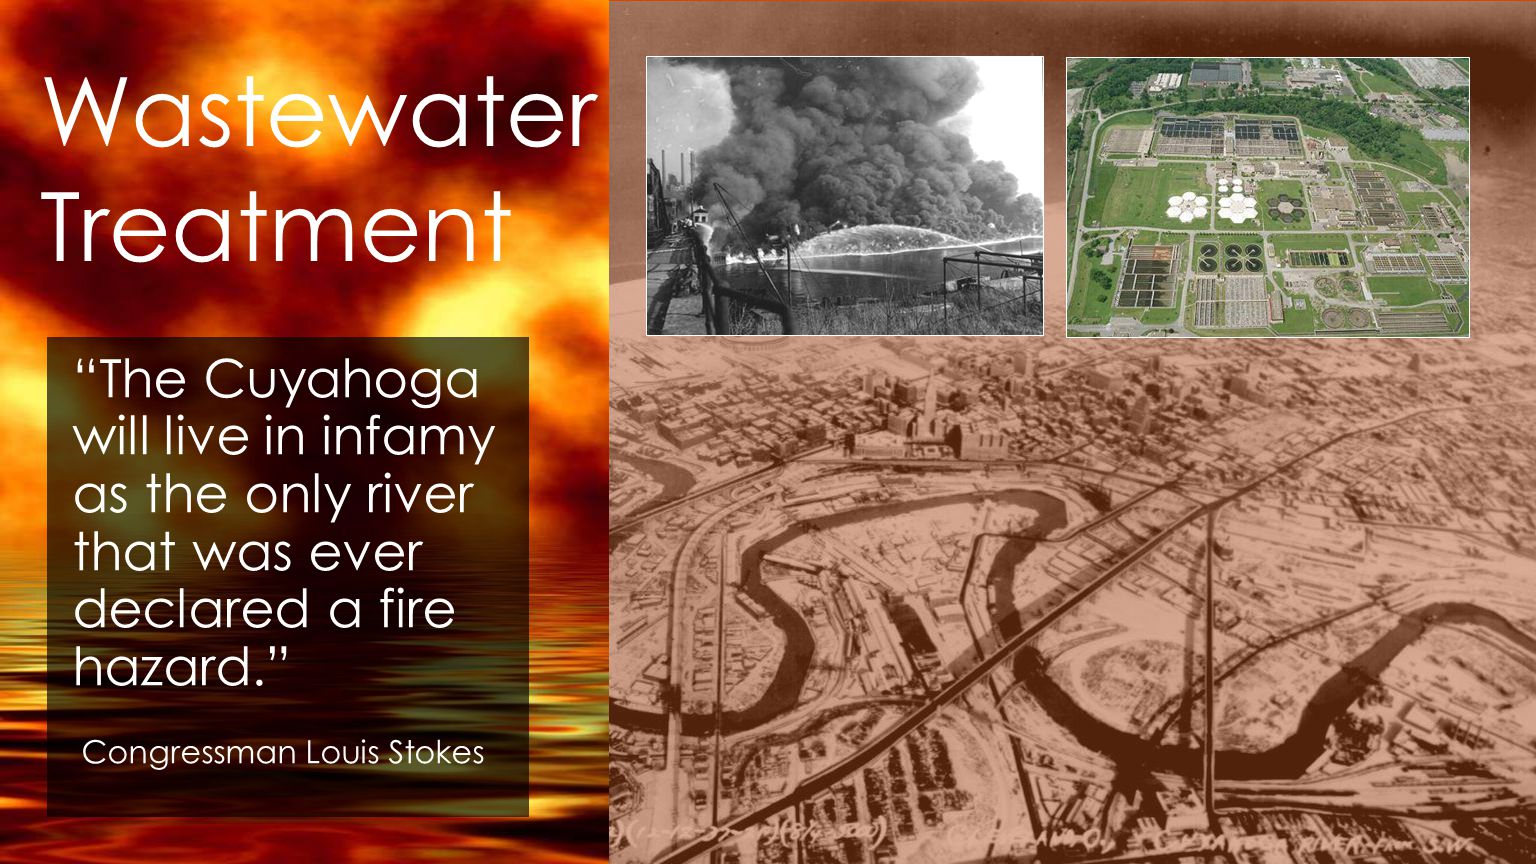 Wastewater Treatment The Cuyahoga will live in infamy as the only river that was ever declared a fire hazard. Congressman Louis Stokes